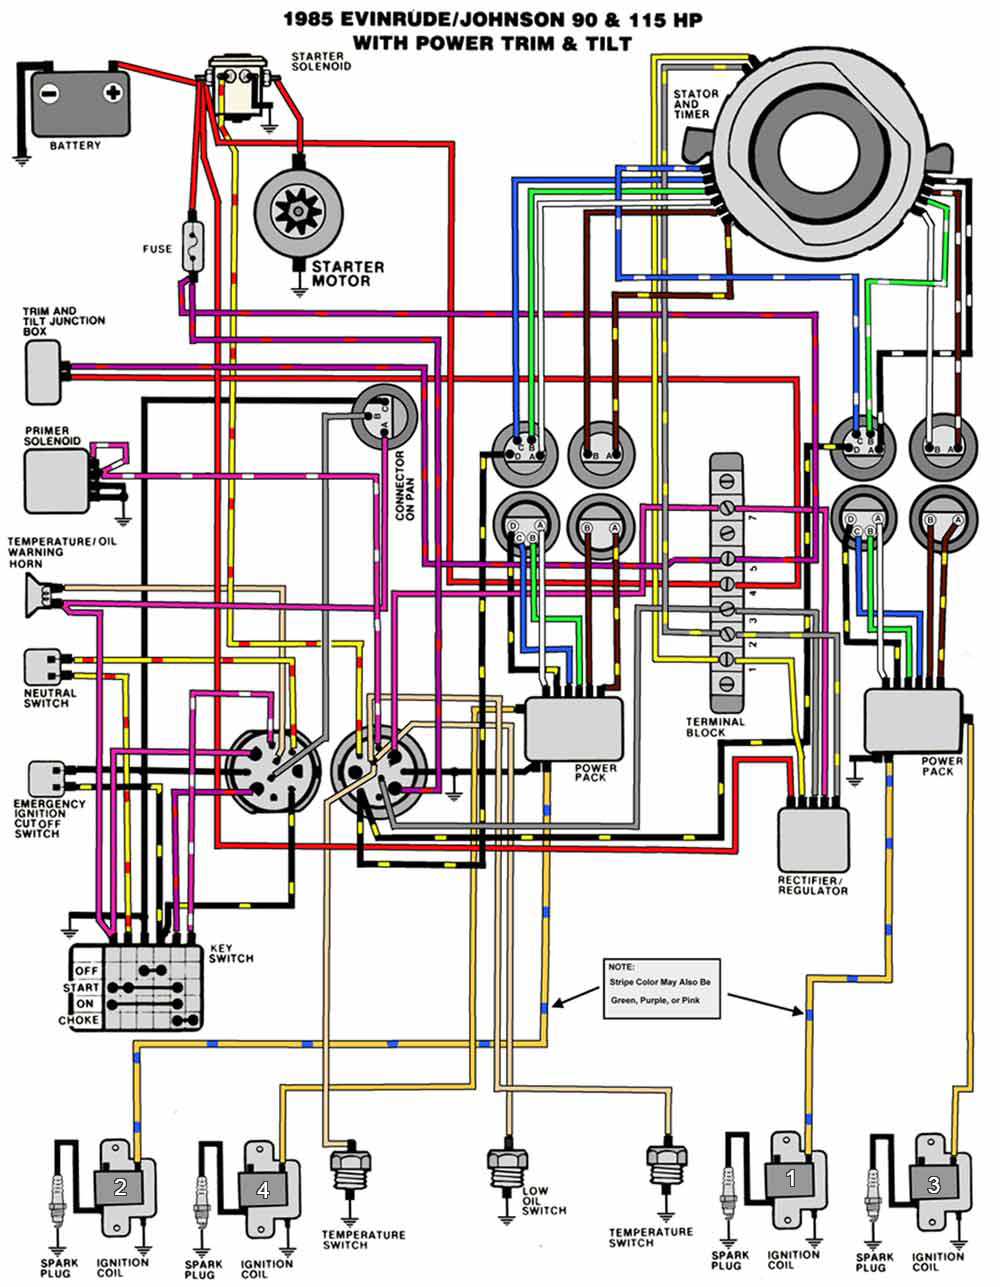 1985_90_115TnT wiring diagram for a 85 hp evinrude outboard wiring wiring  at gsmx.co